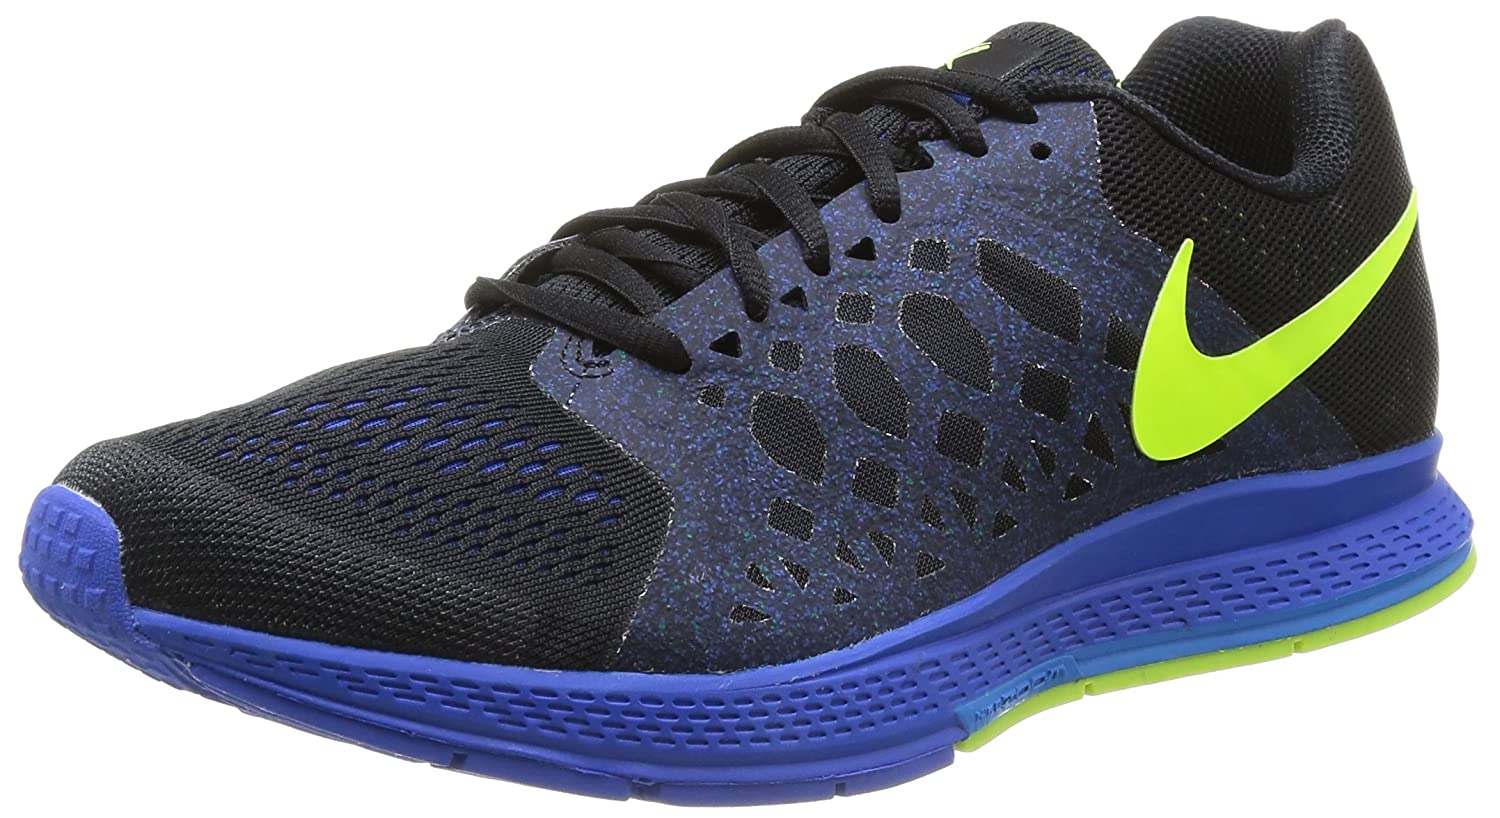 Amazon.com : Nike Men's Zoom Pegasus 31 Black/Volt/Hyper Cobalt Running Shoe  7.5 Men US : Sports & Outdoors